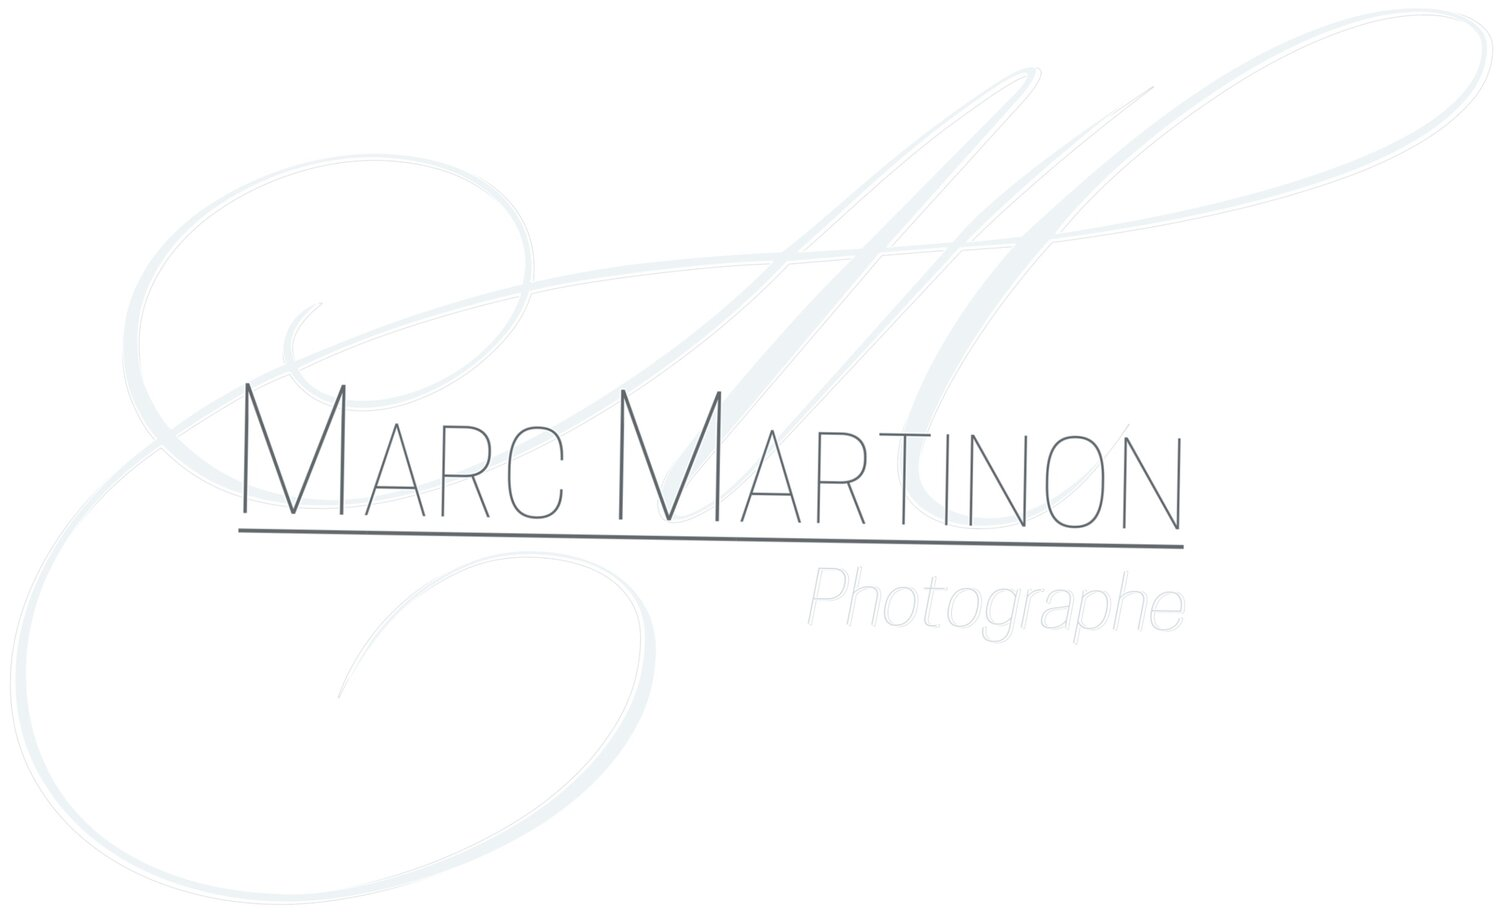 Marc Martinon